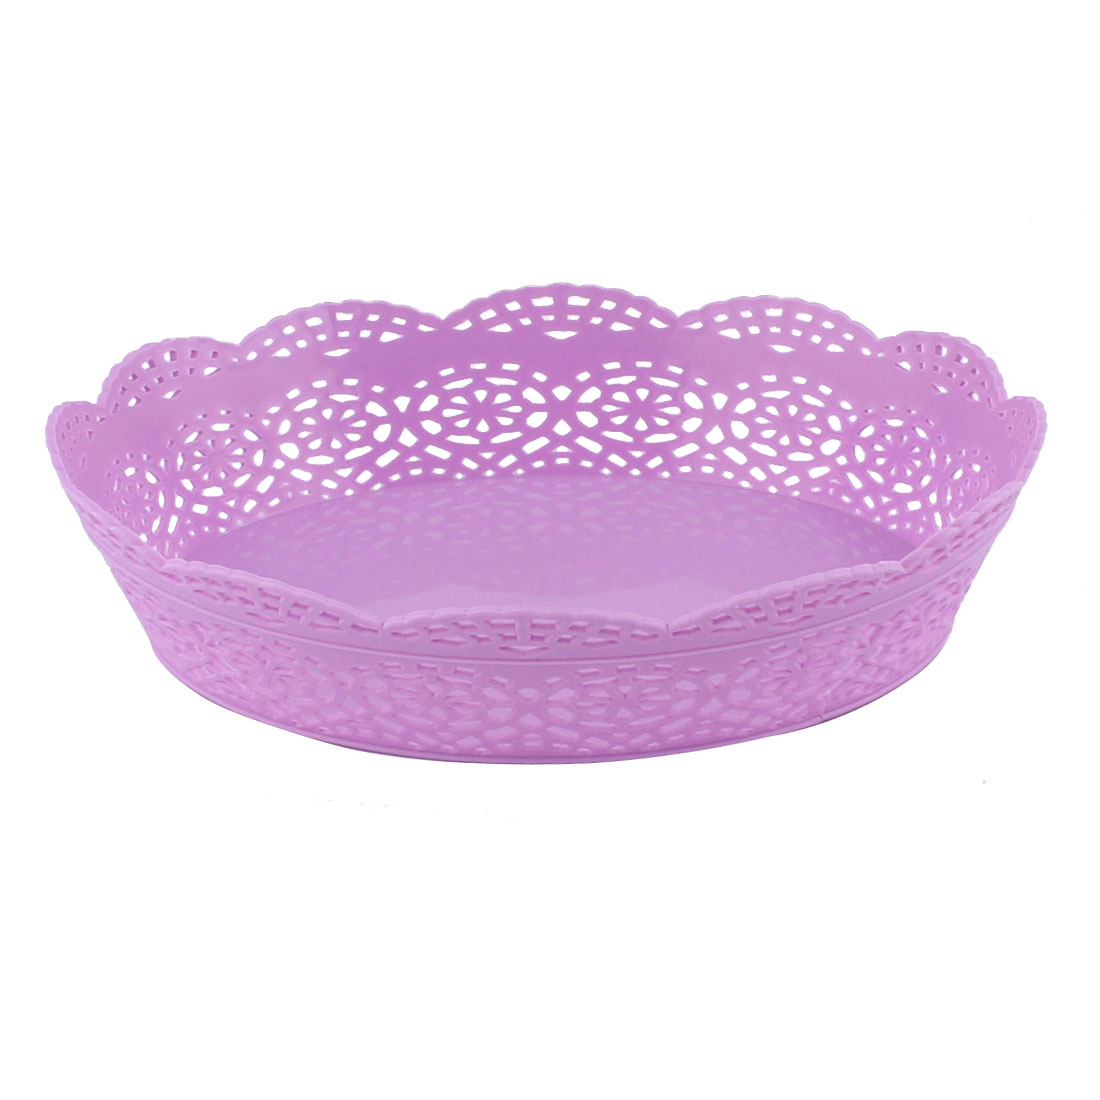 Home Living Room Plastic Oval Shaped Hollow Out Wave Edge Fruit Plate Basket Purple